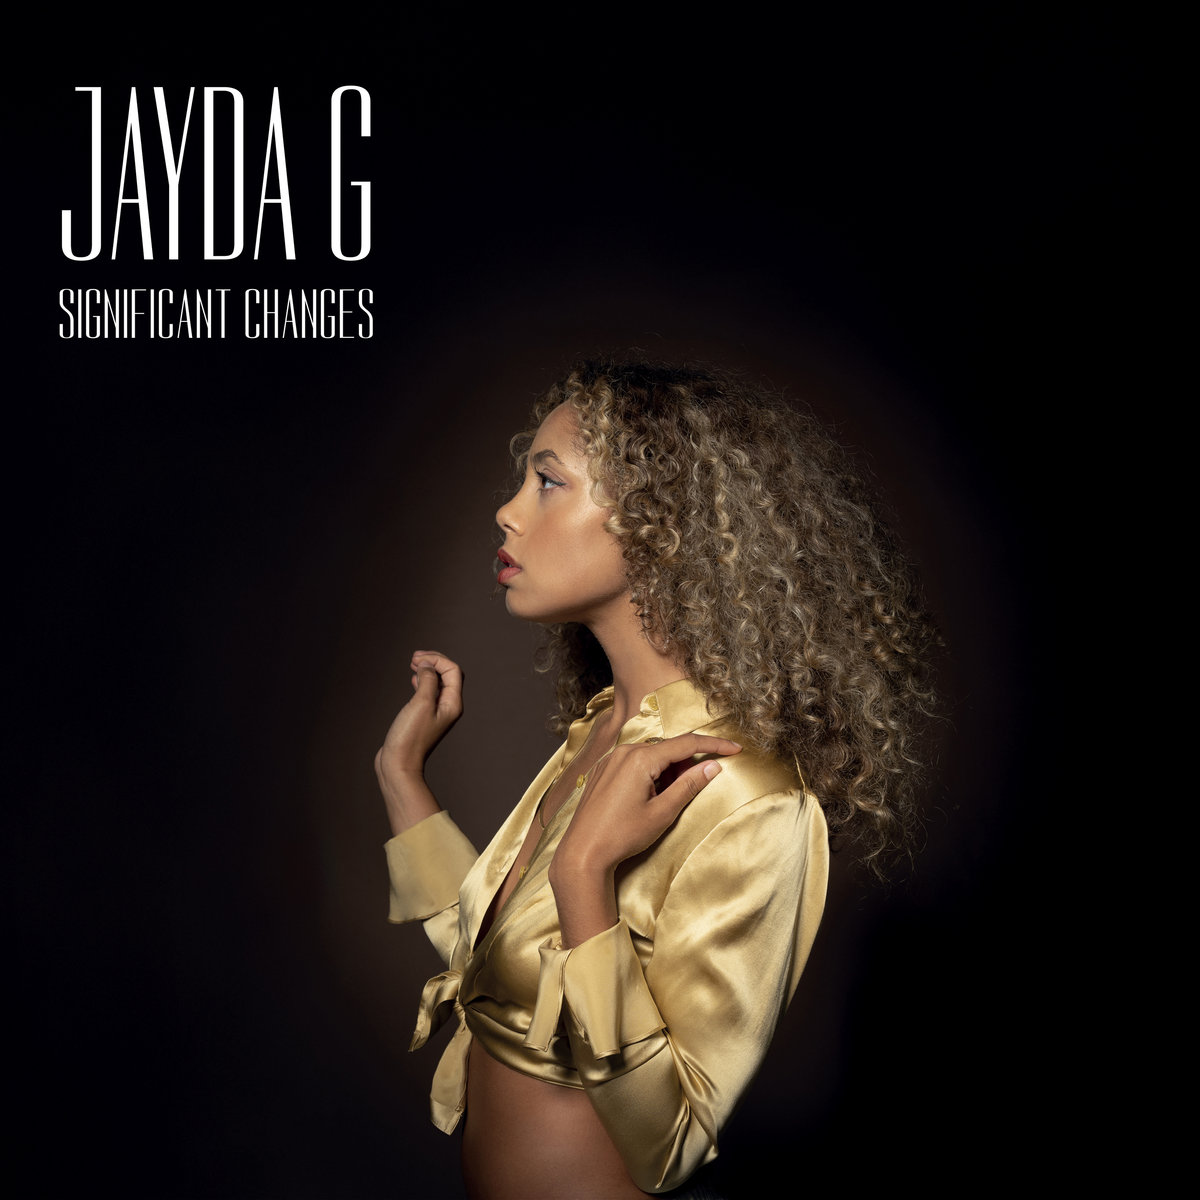 Jayda G delivers party bangers with a conscience on Significant Changes